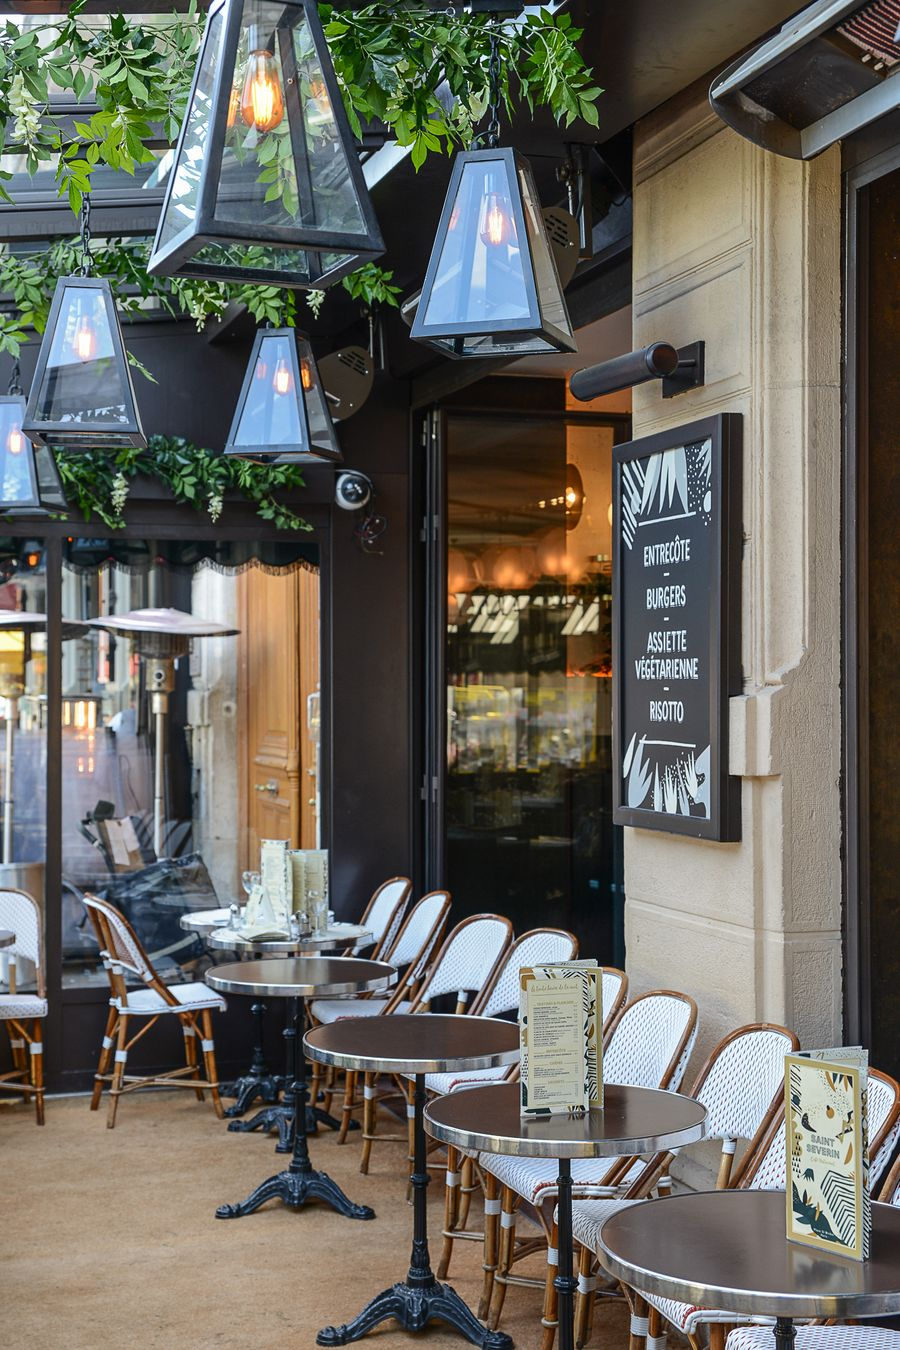 Mobilier Terrasse Restaurant Credit Anthony Cottarel Brasserie Saint Severin Paris Decoration